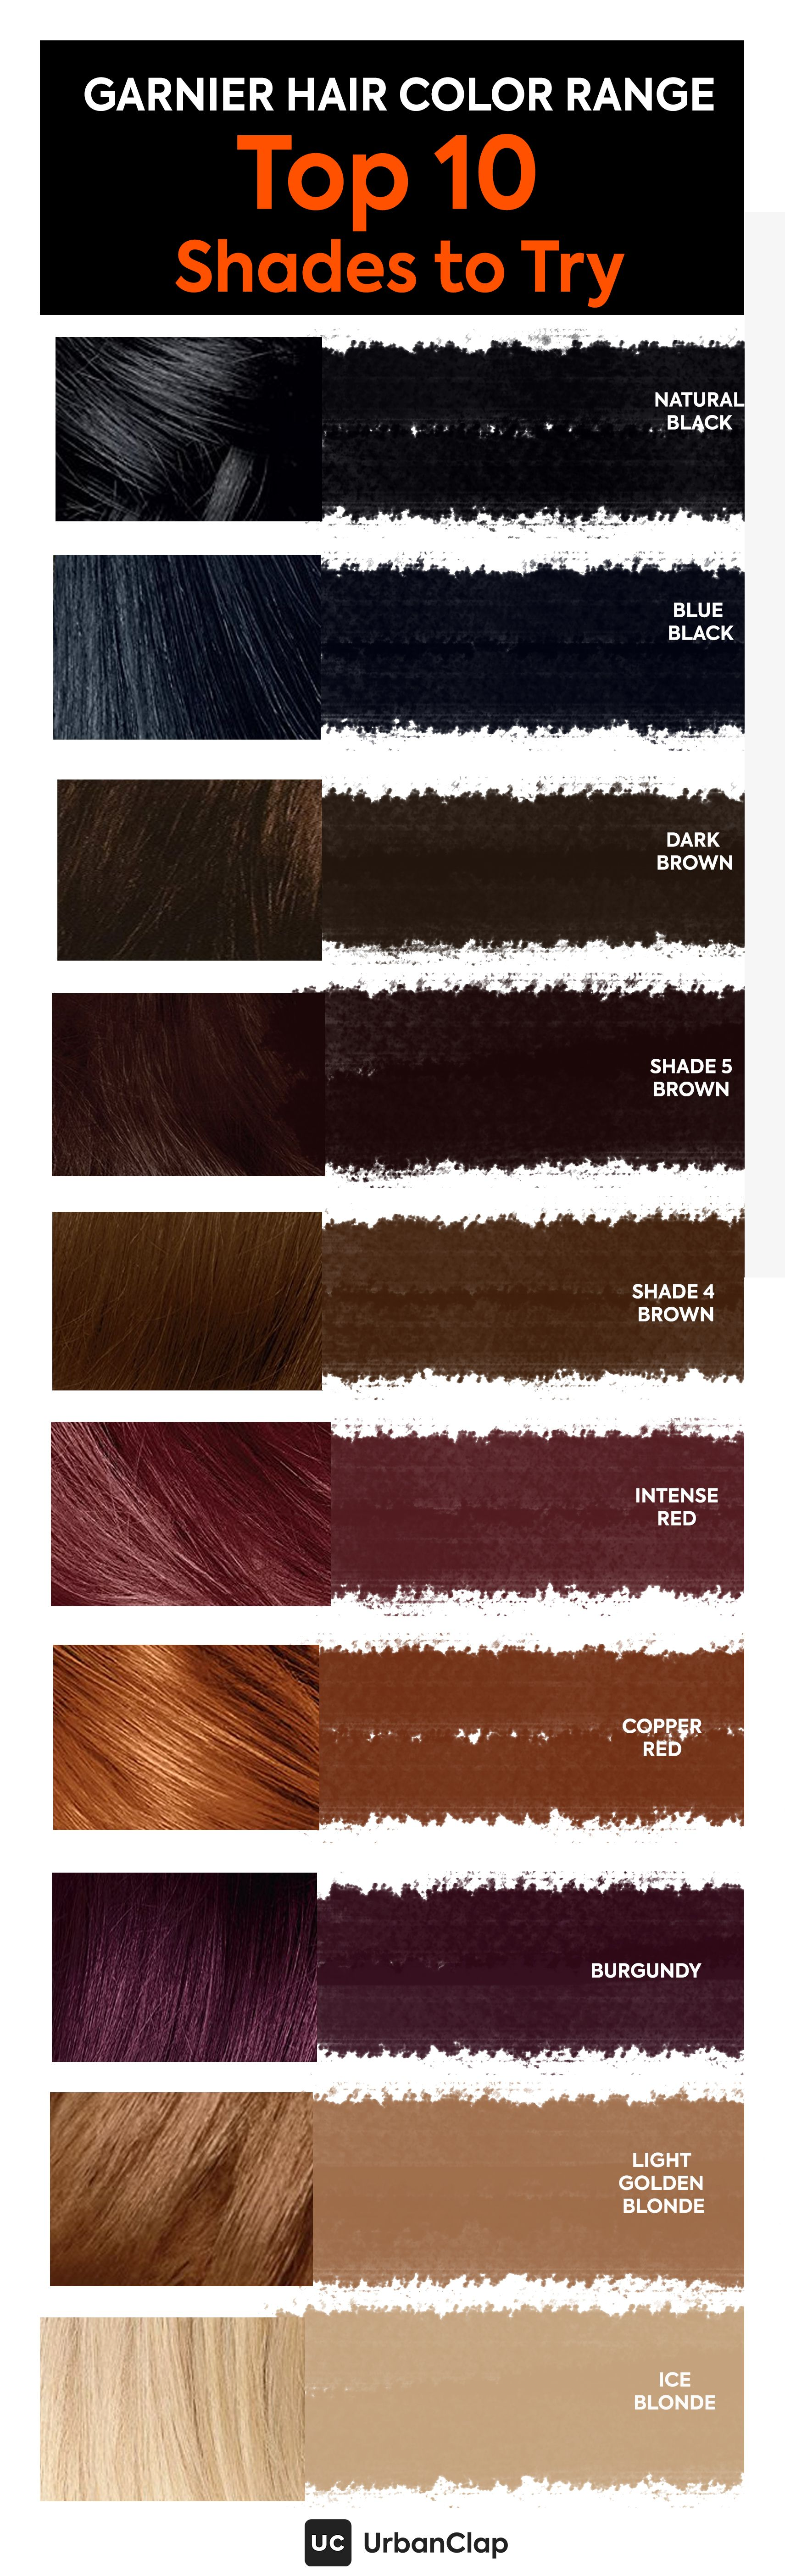 In Case You Don T Want To Try Something Drastic Like Blue Hues Or Unicorn Hair There Are Some Great Shad In 2020 Garnier Hair Color Indian Skin Tone Hair Color Shades